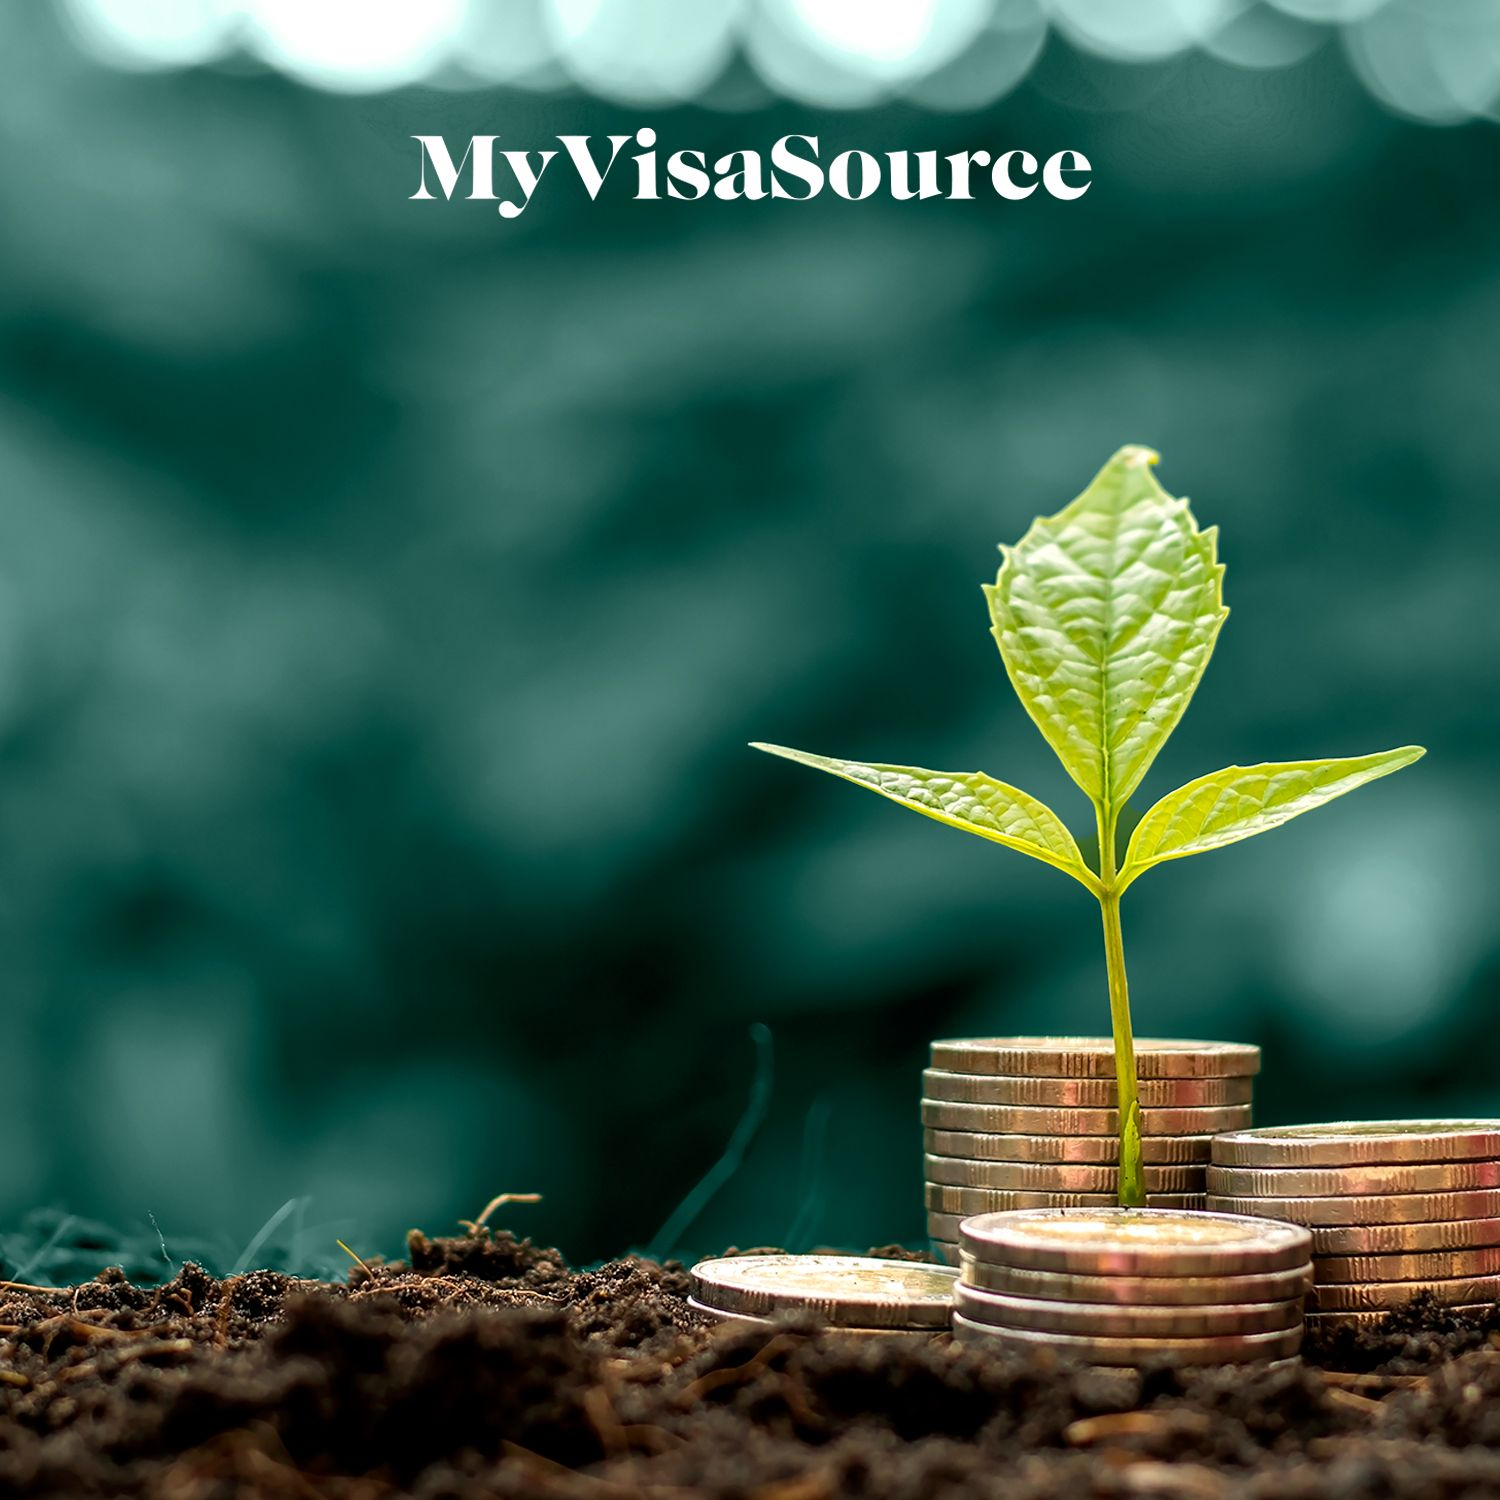 stacks of coins on the ground with some leaves growing on top my visa source